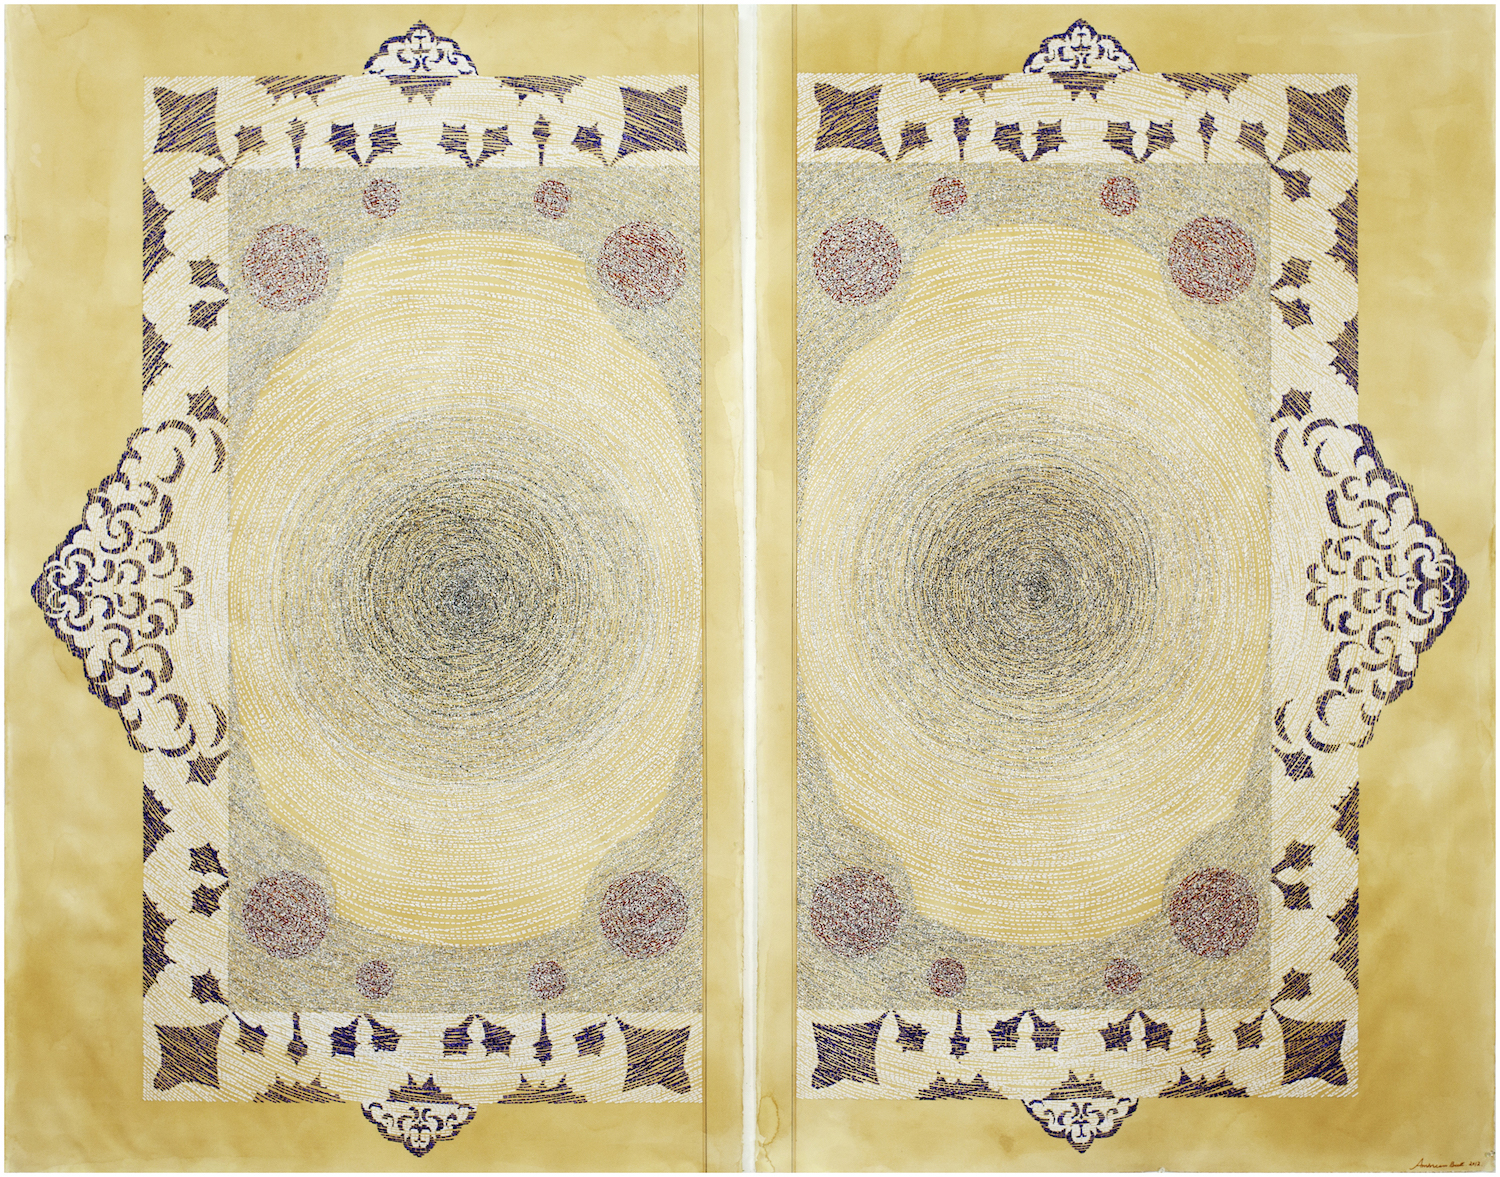 Ambreen Butt,  Pages of Deception , 2015, Torn and collaged text on tea stained paper, 70 1/2 x 45 inches each (177.8 x 114.3 cm)